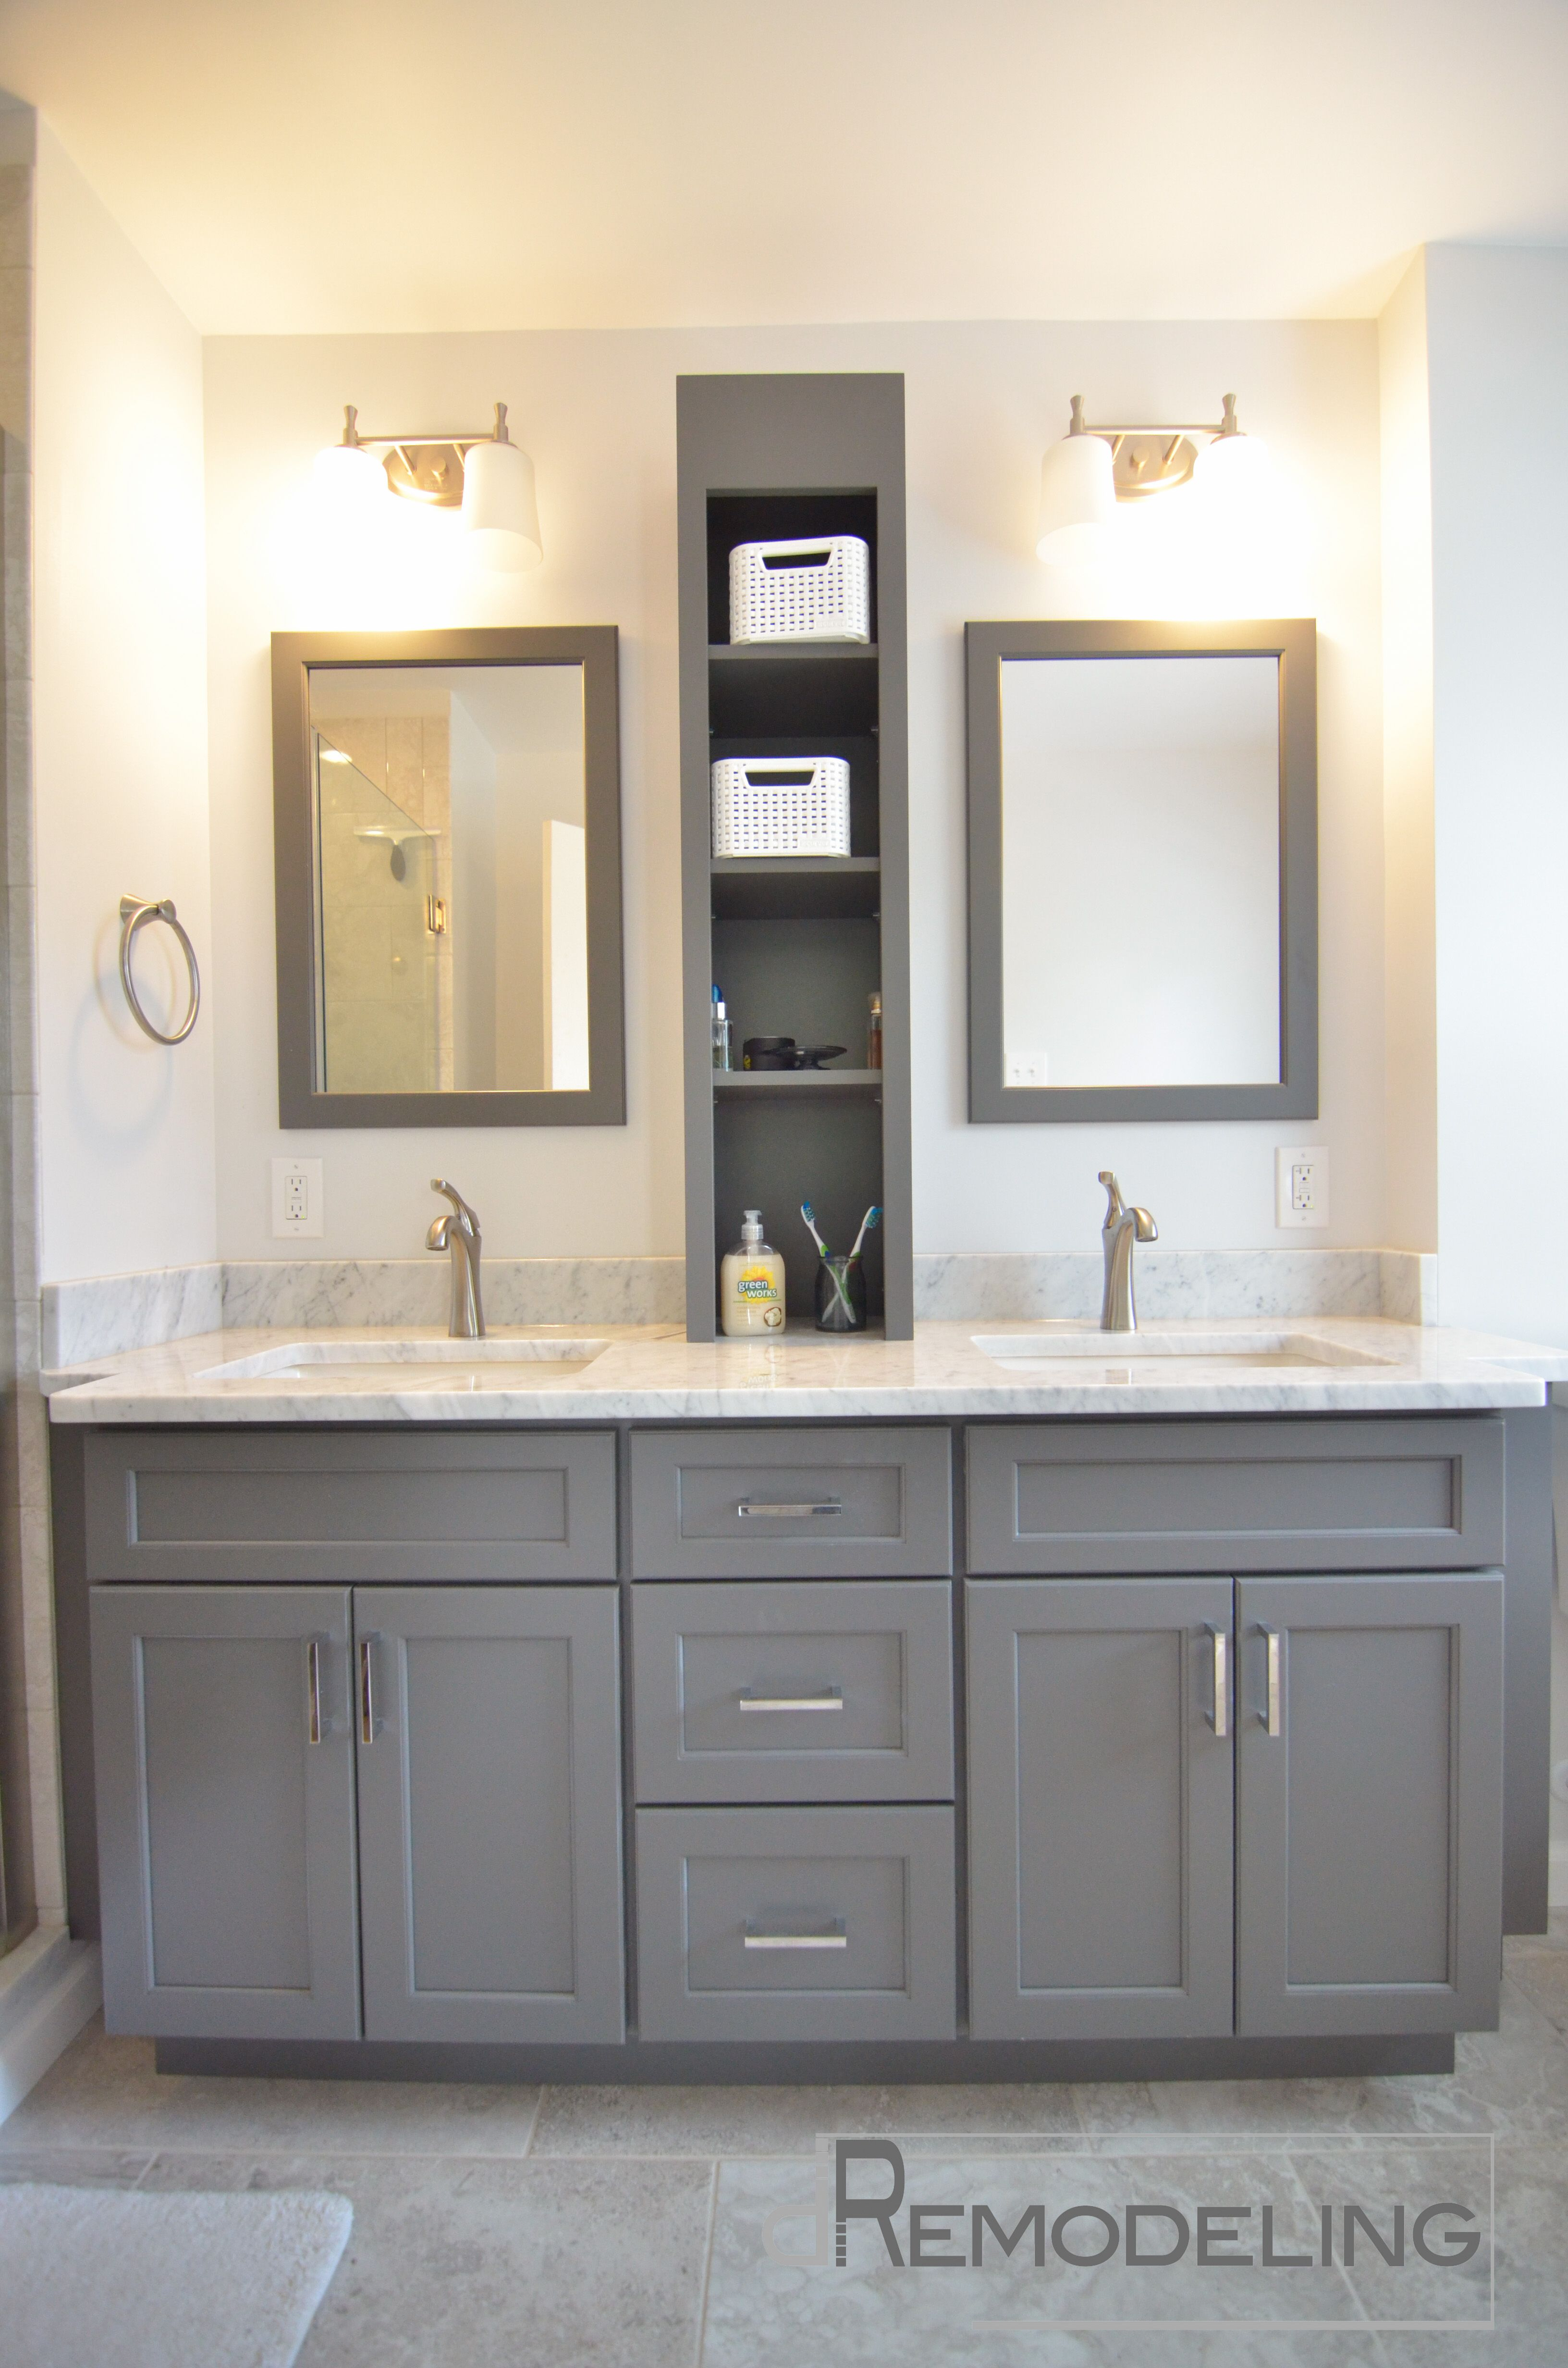 Palatial double wall mounted rectangle mirror frames over double